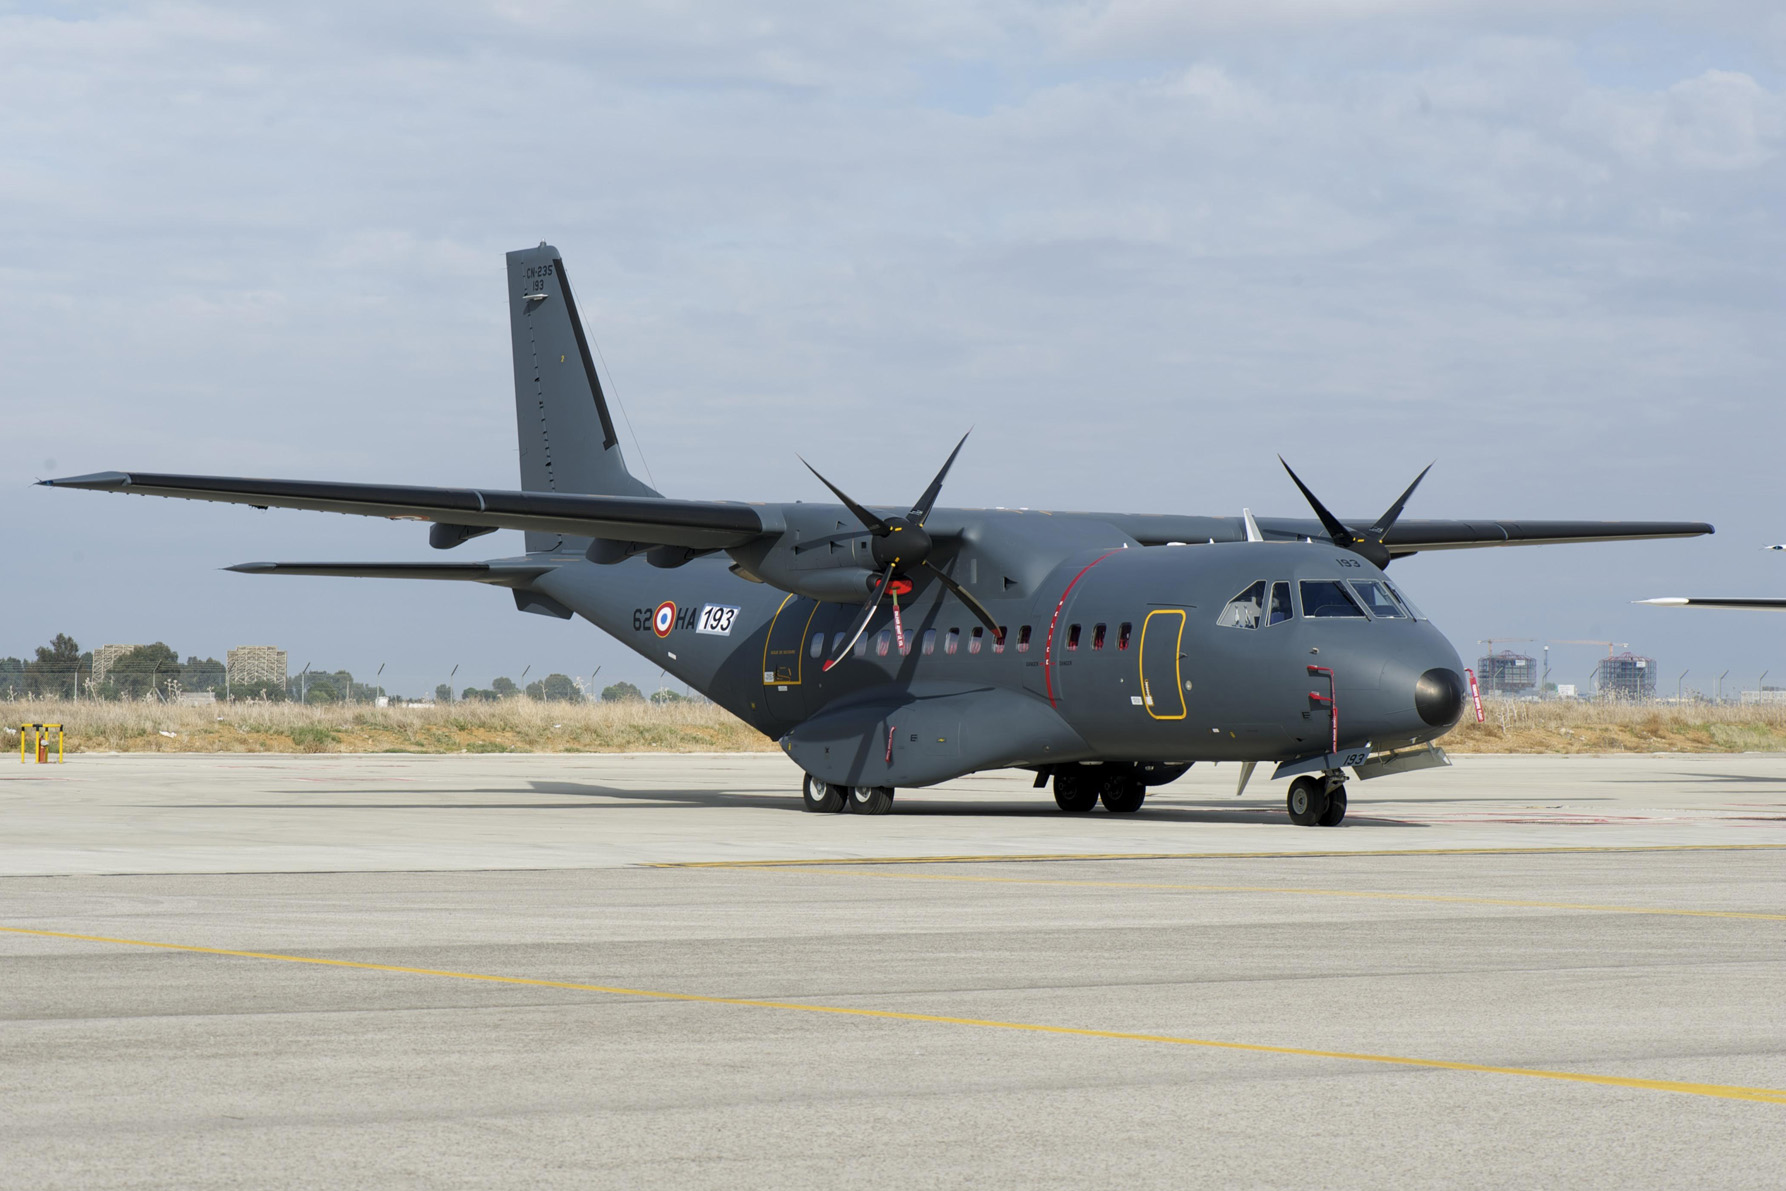 France takes delivery of CN235